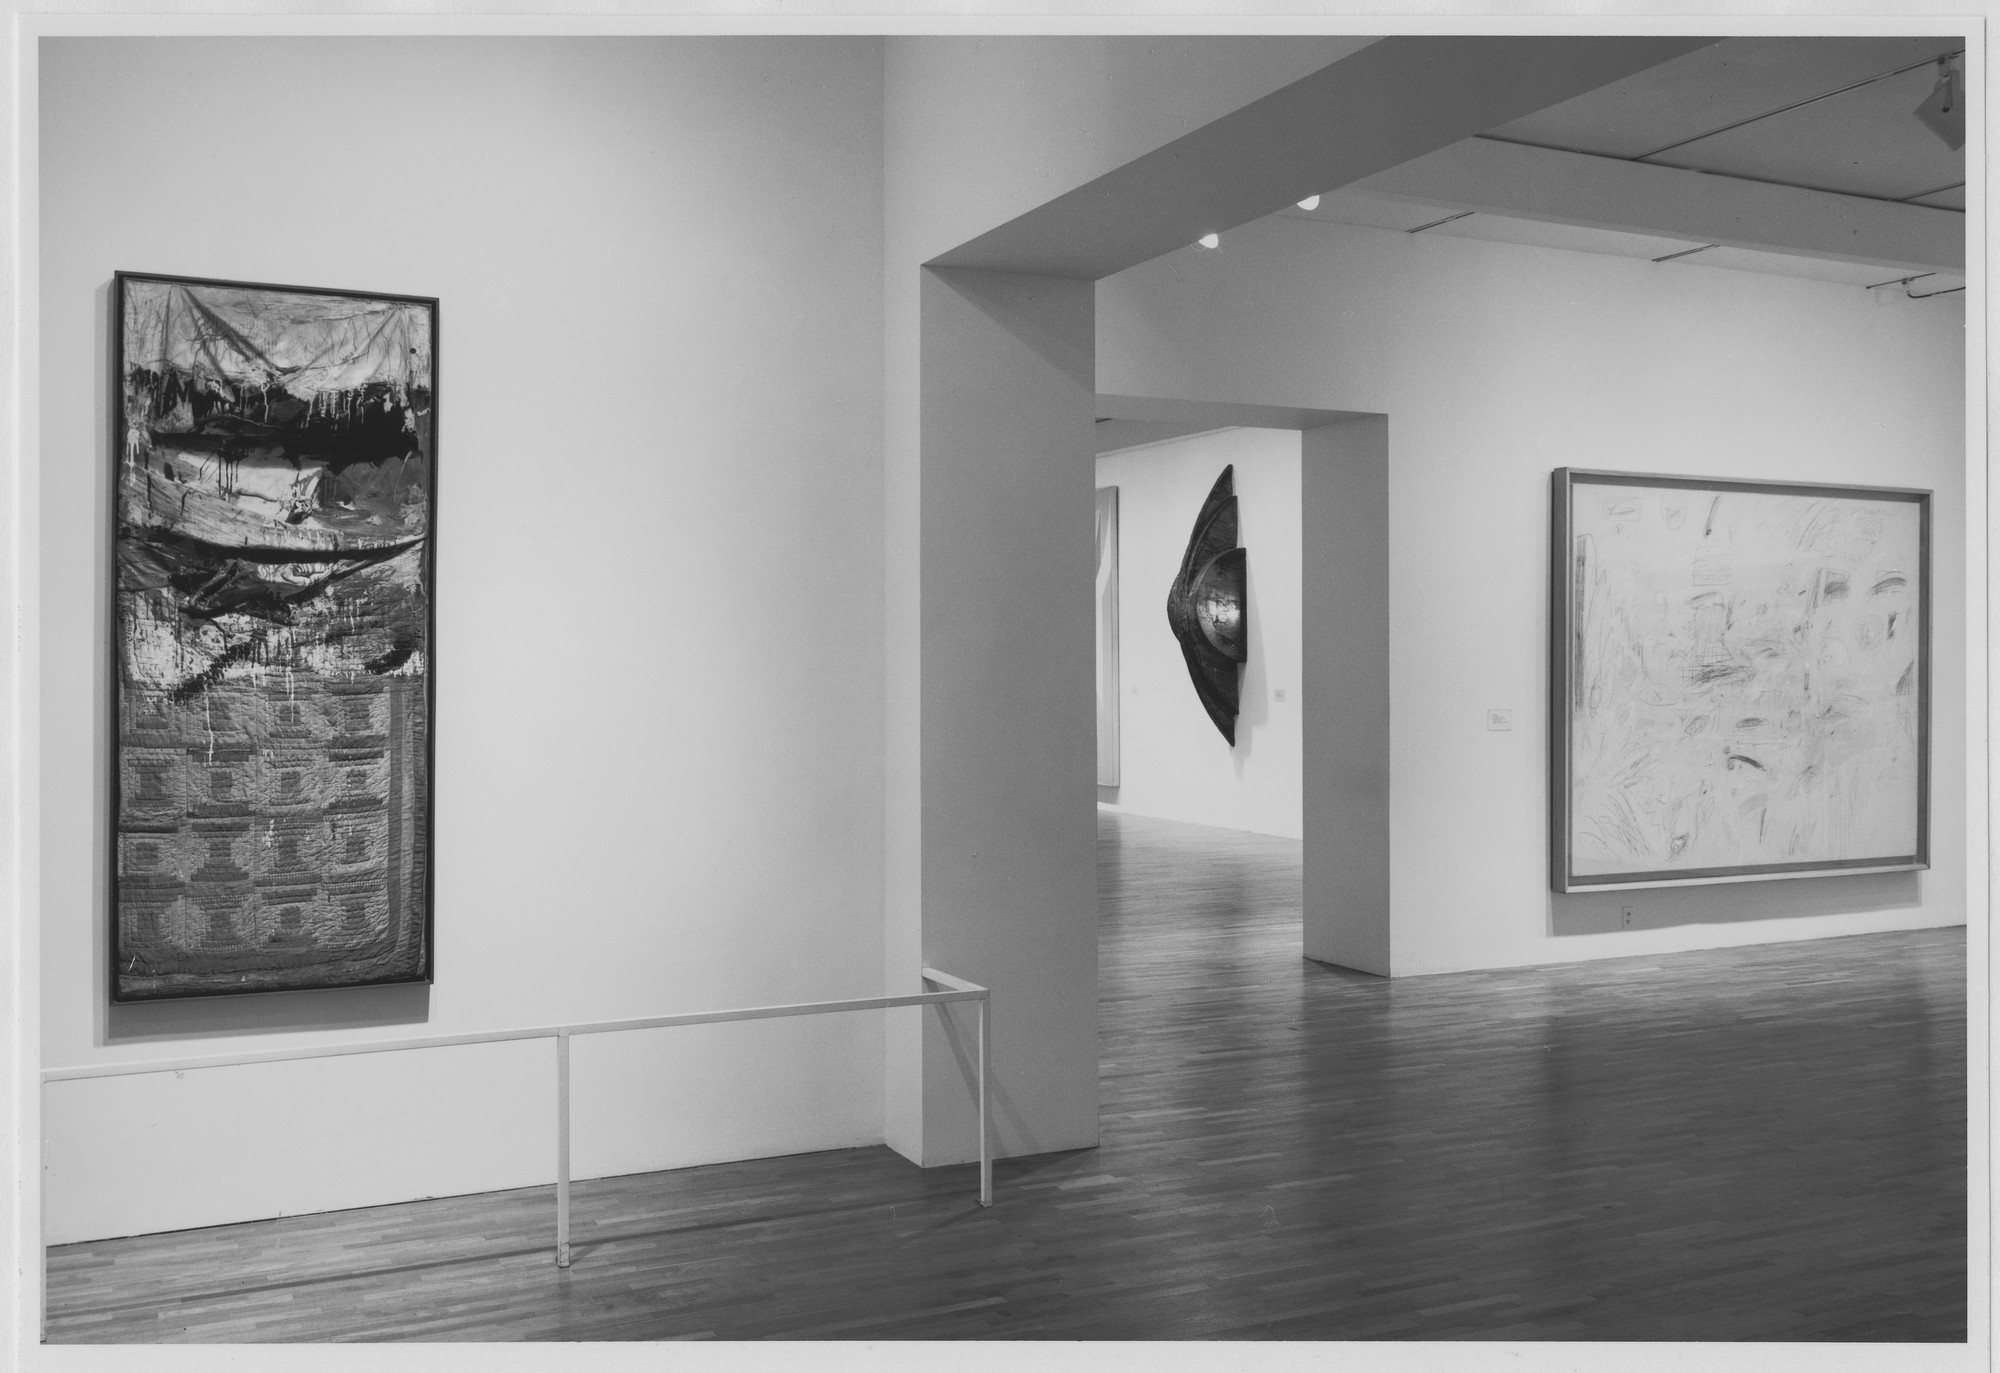 "Installation view of the exhibition, ""Contemporary Works from the Collection"" June 24, 1989–March 18, 1990. Photographic Archive. The Museum of Modern Art Archives, New York. IN1522.1. Photograph by Mali Olatunji."